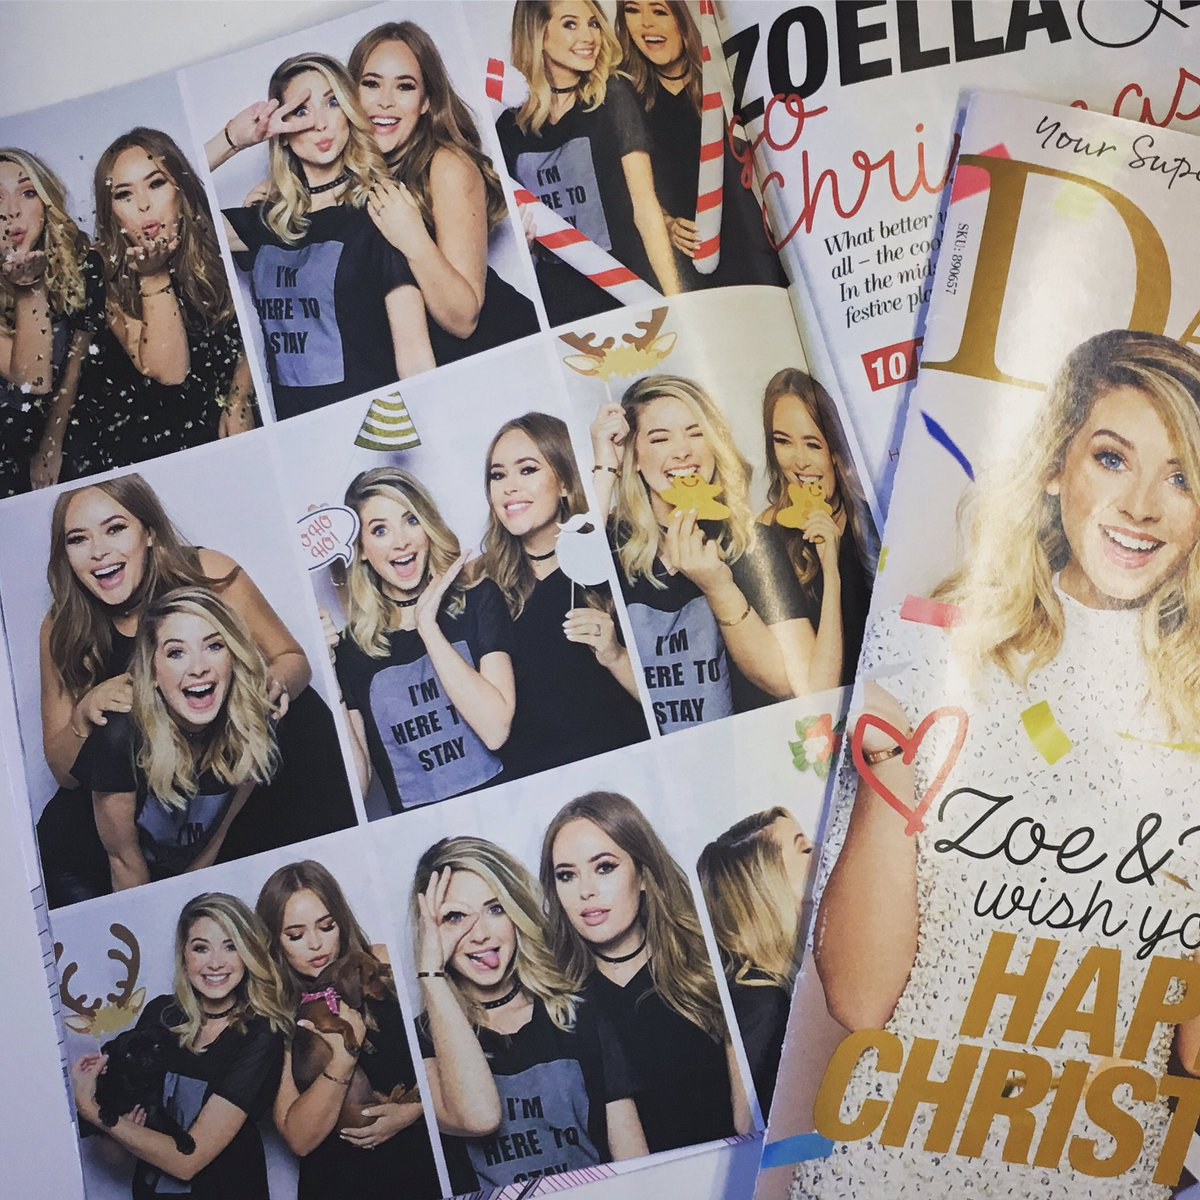 More pics from my shoot with @zoella & @TanyaBurr